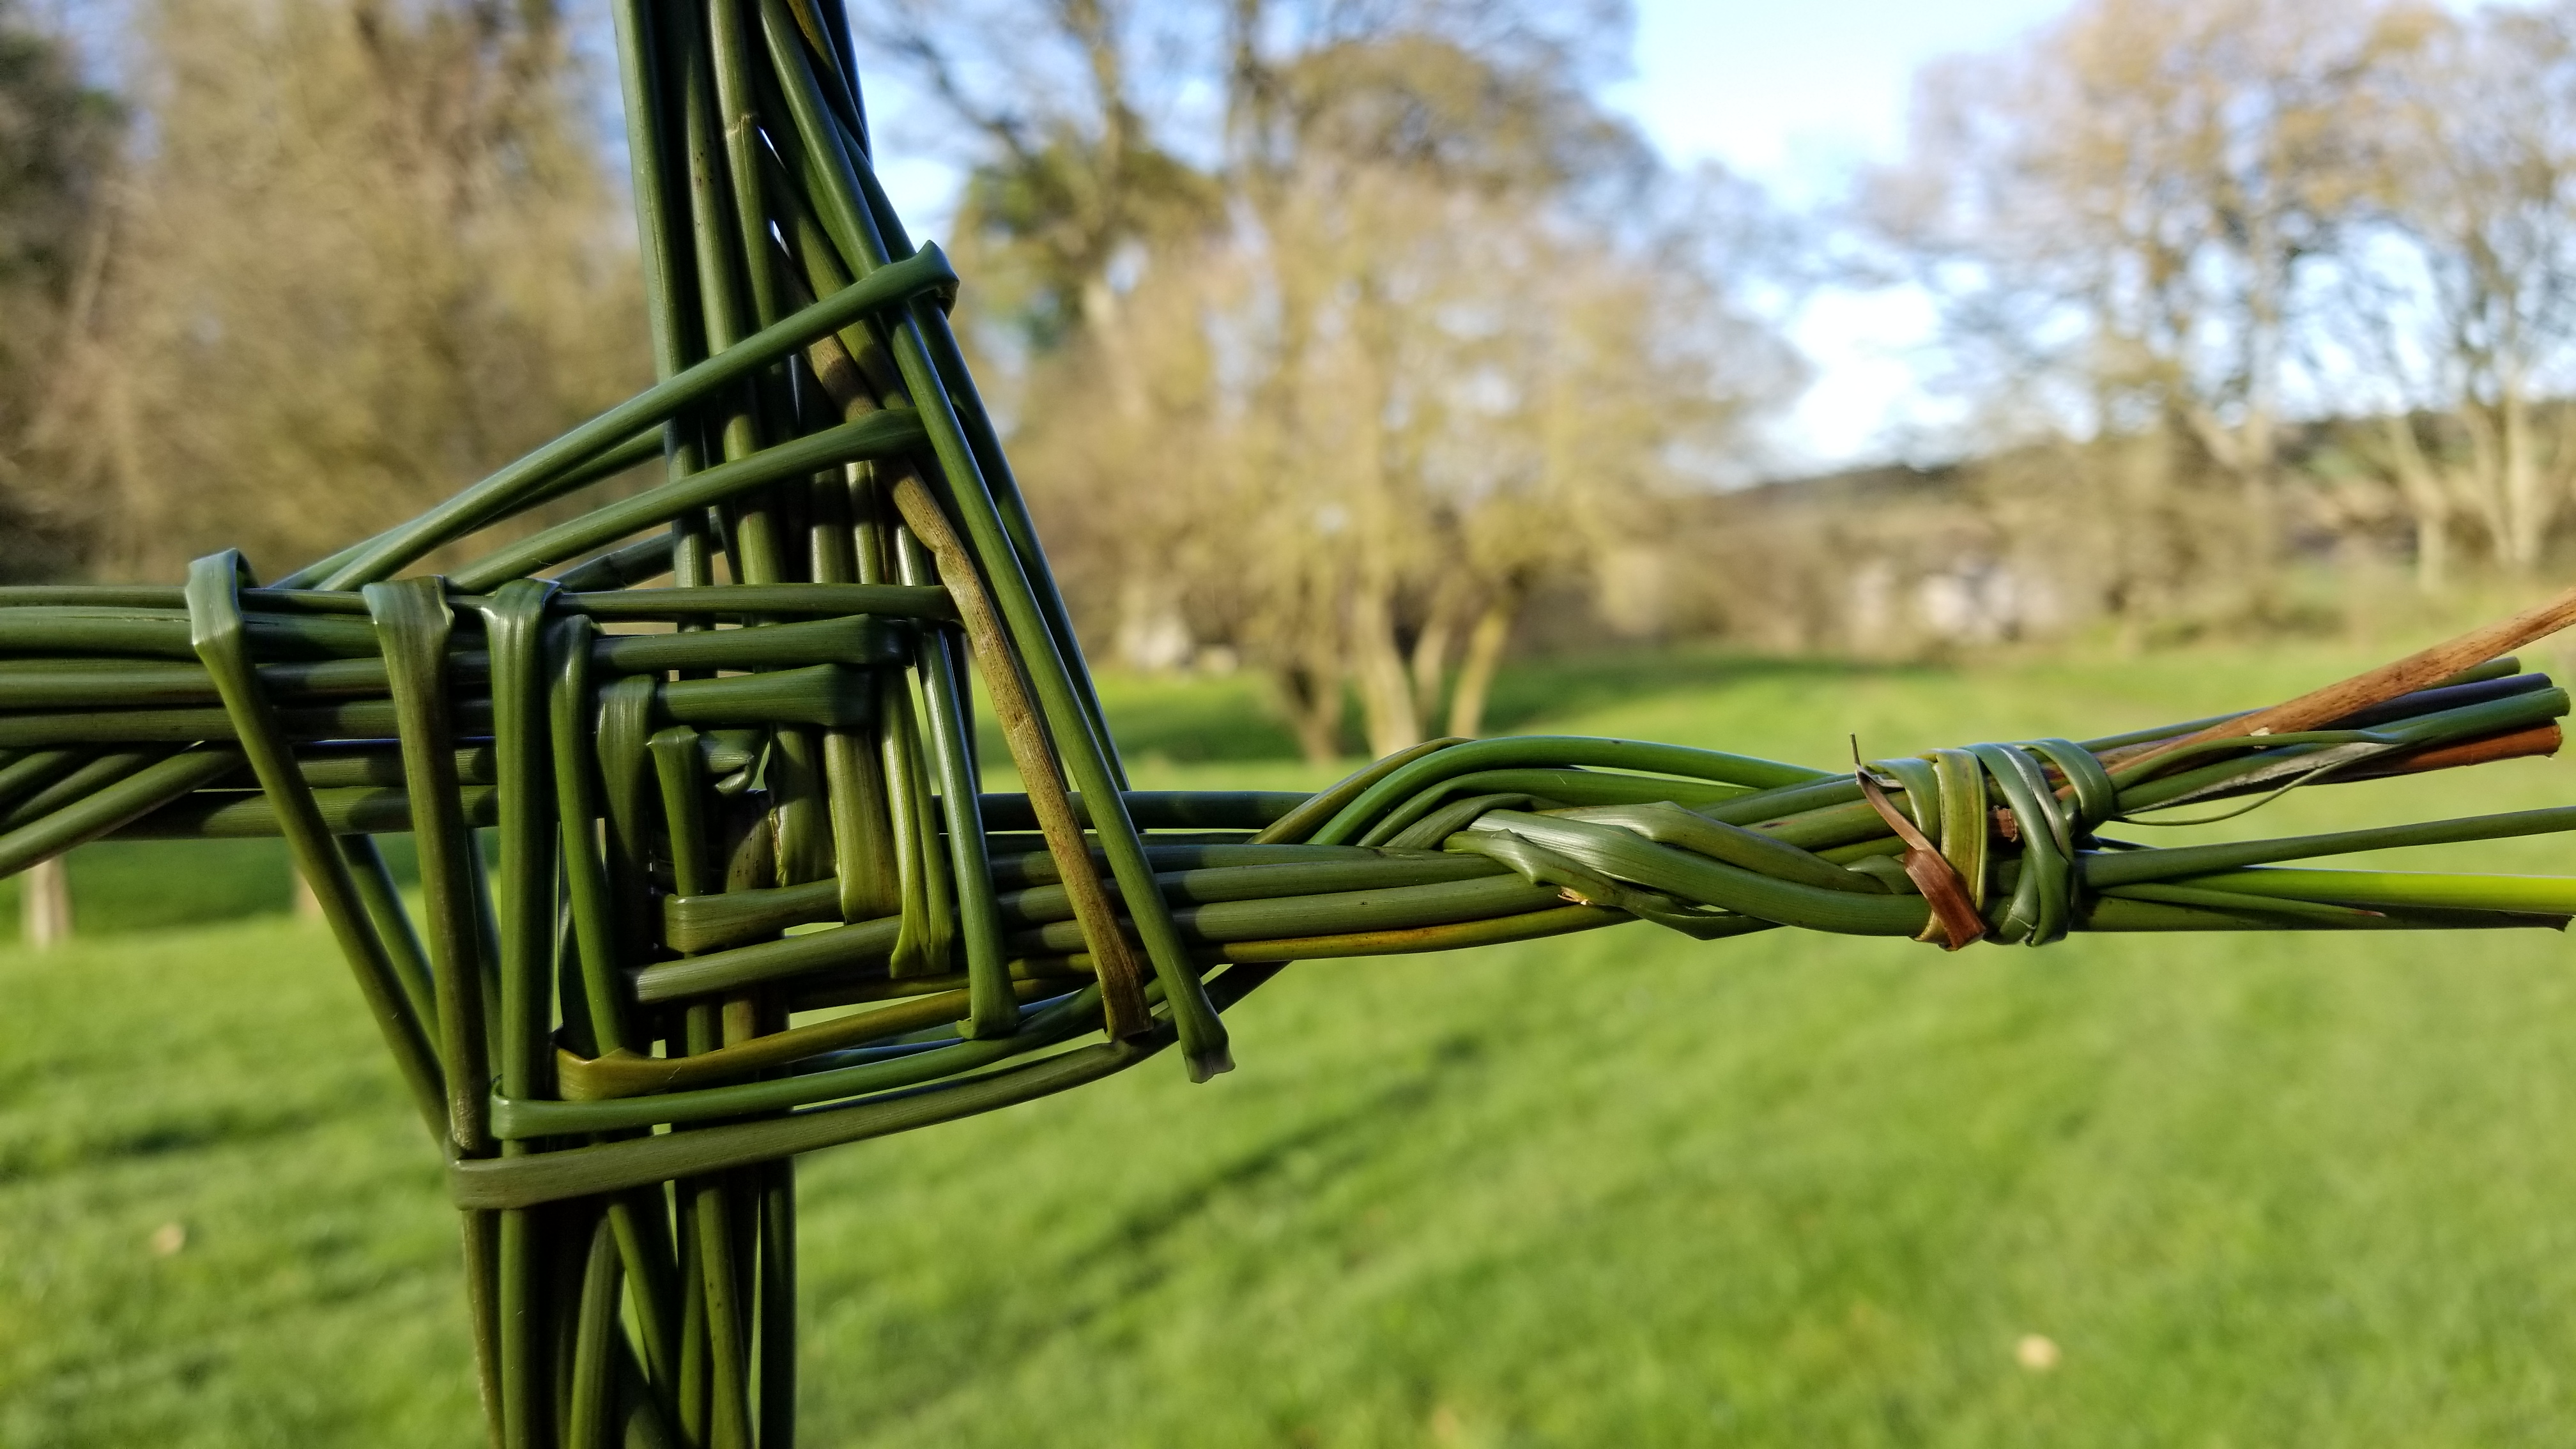 Celebrating St  Brigid's Day with Pagan Rituals | Study Abroad Blogs